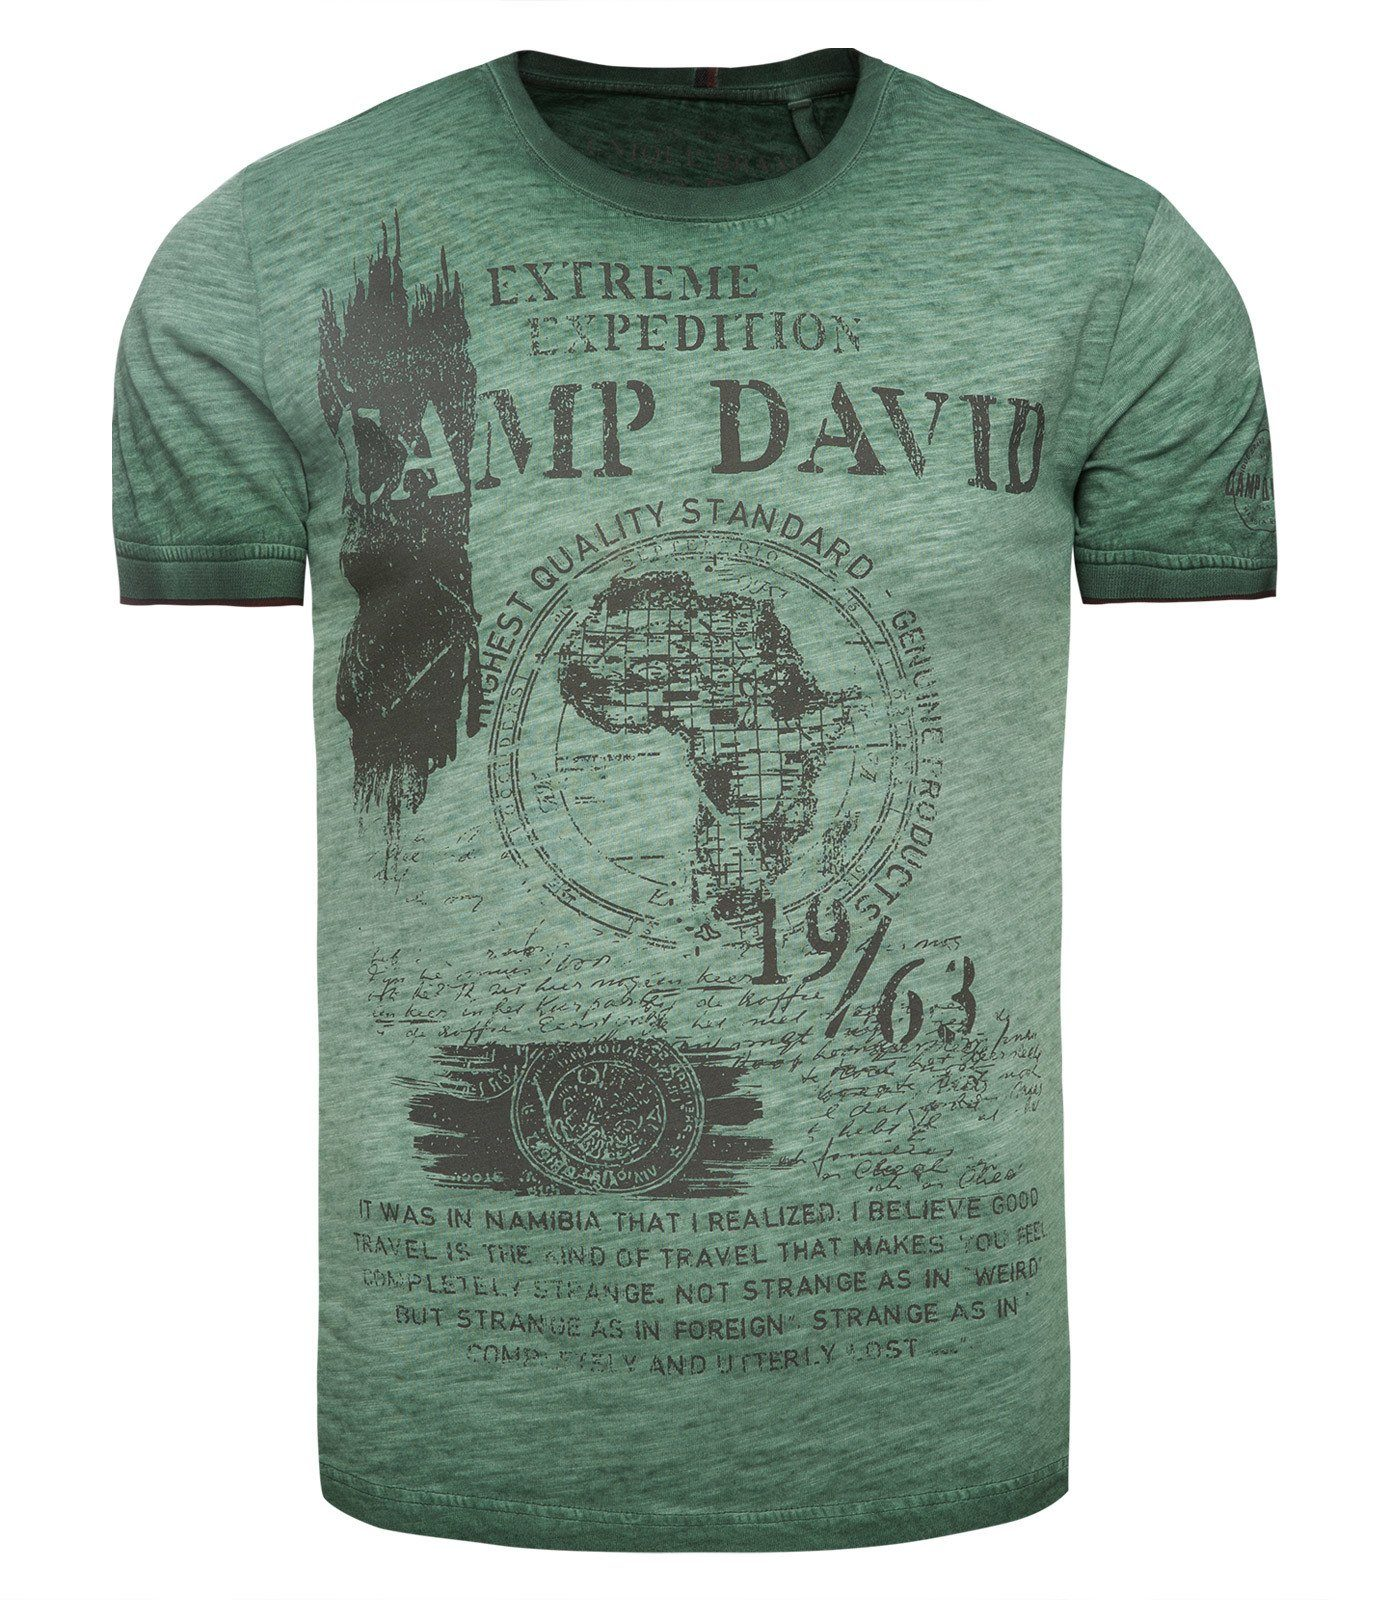 CAMP DAVID T-Shirt mit Inside-Oil-Dyed-Färbung